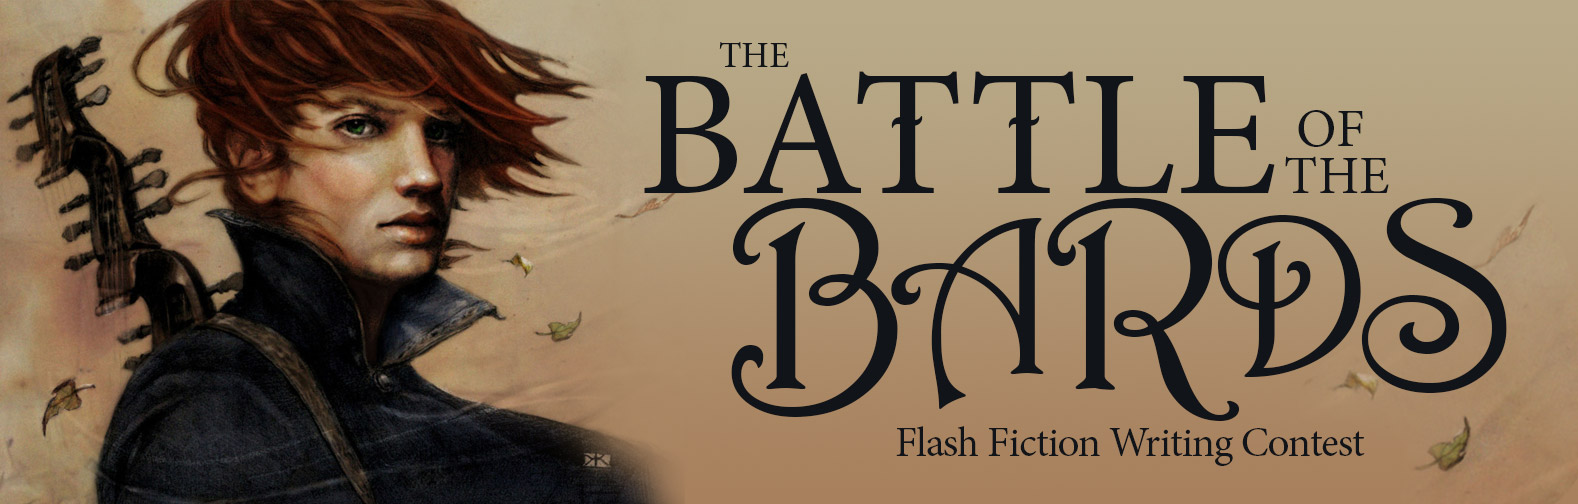 The Battle of the Bards Flash Fiction Writing Contest